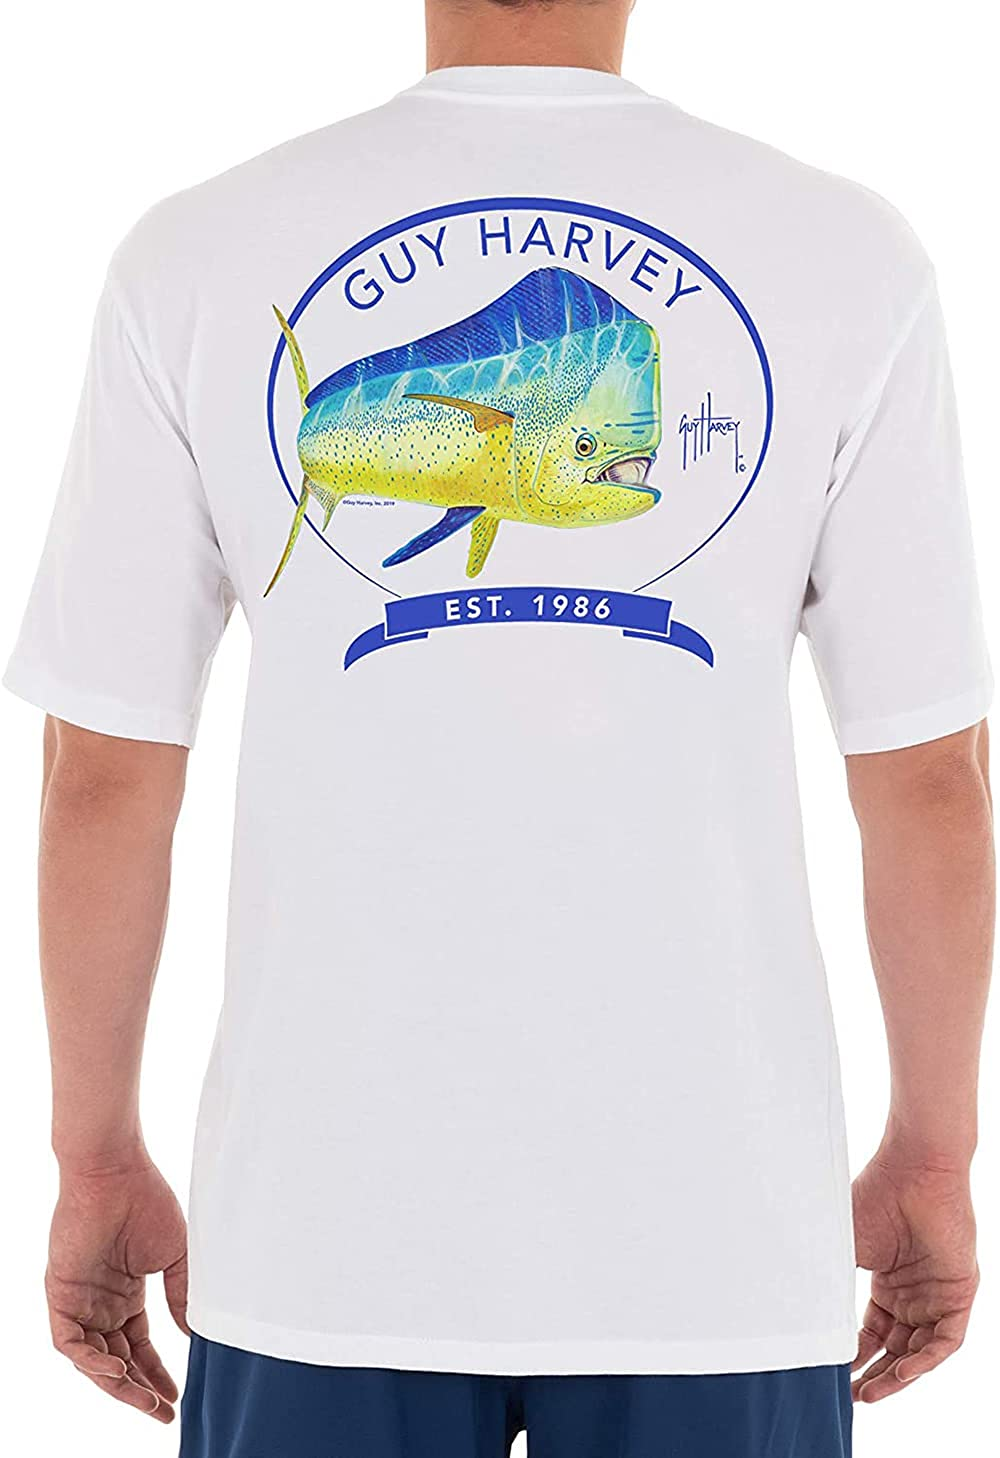 Guy Harvey Men's Genuine Offshore Fish Sleeve Animer and price revision T-Sh Collection Short